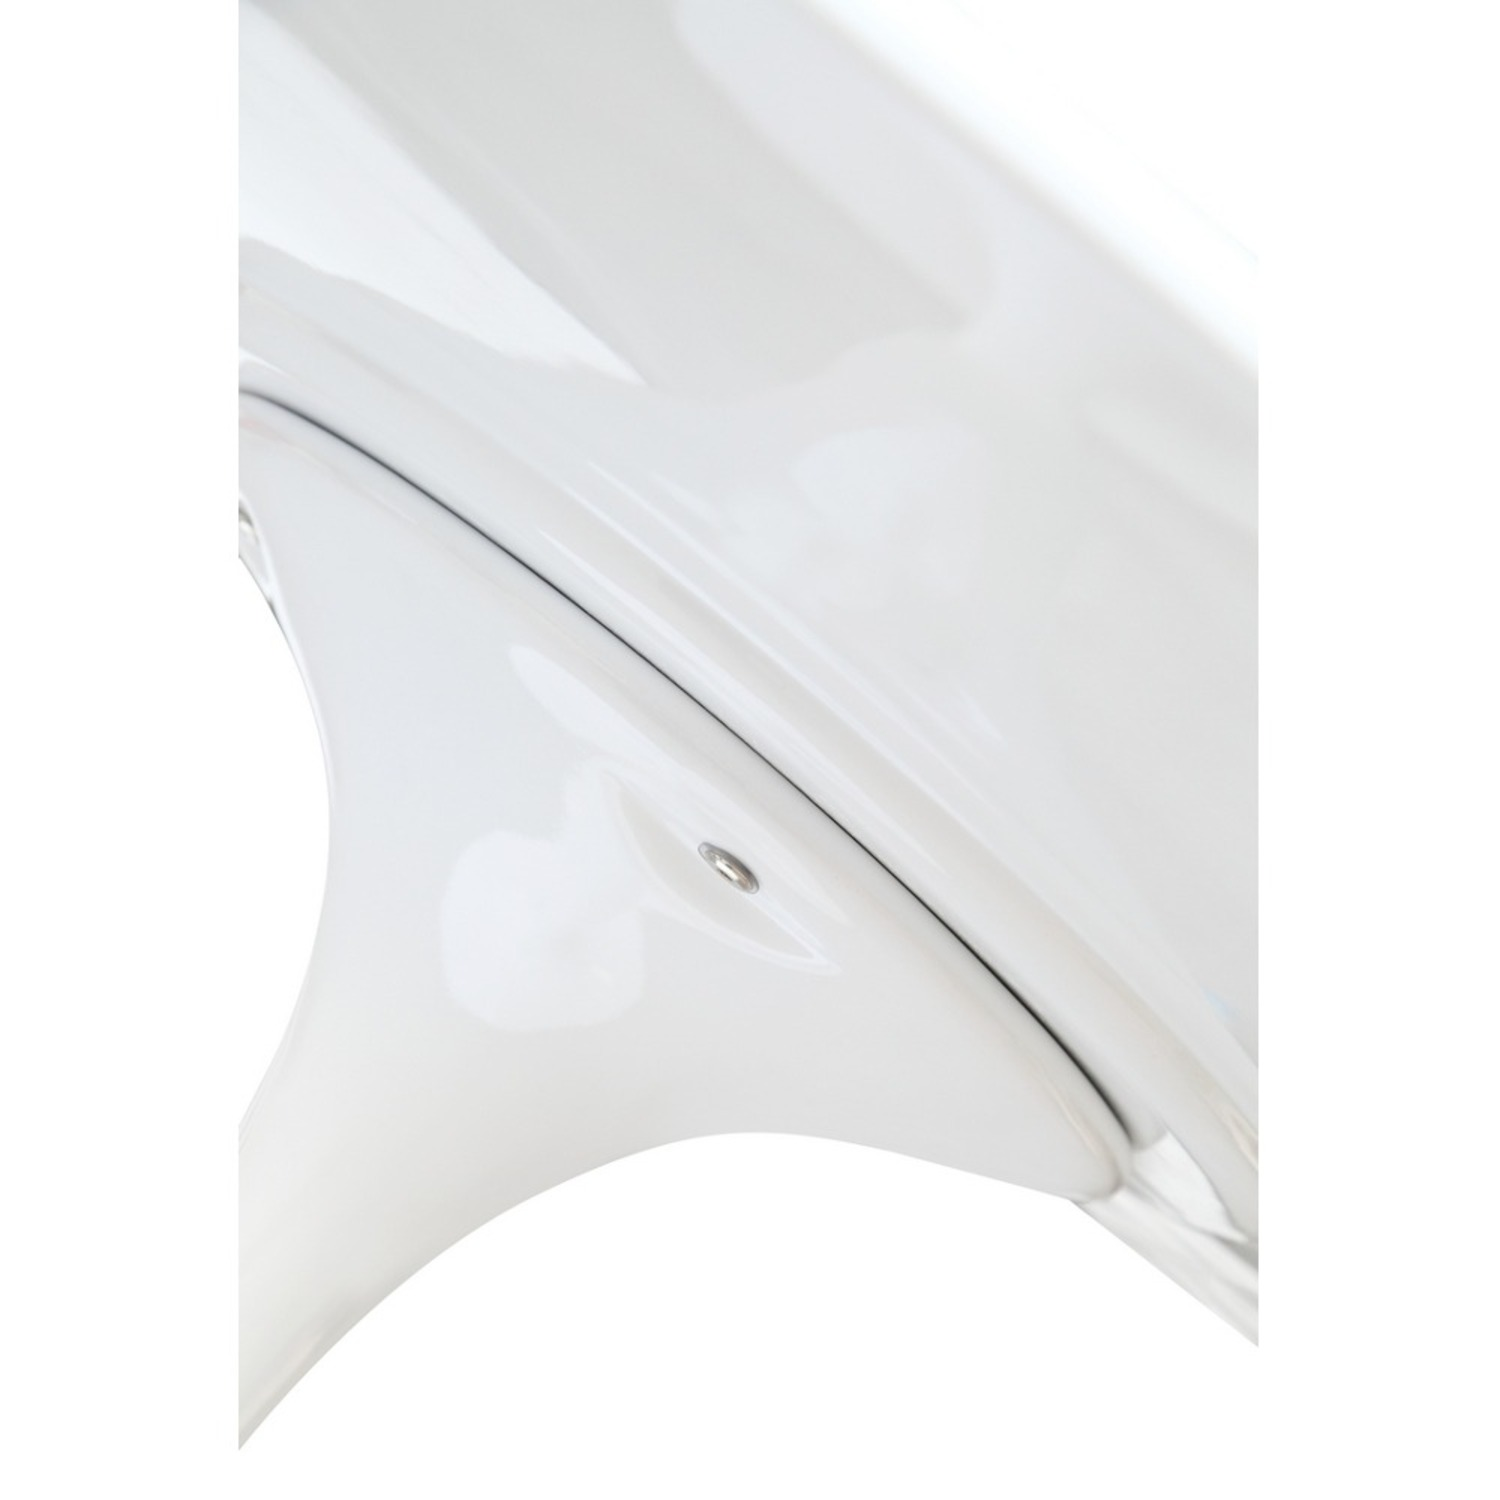 48-Inch Dining Table Molded In White Fiberglass - image-3